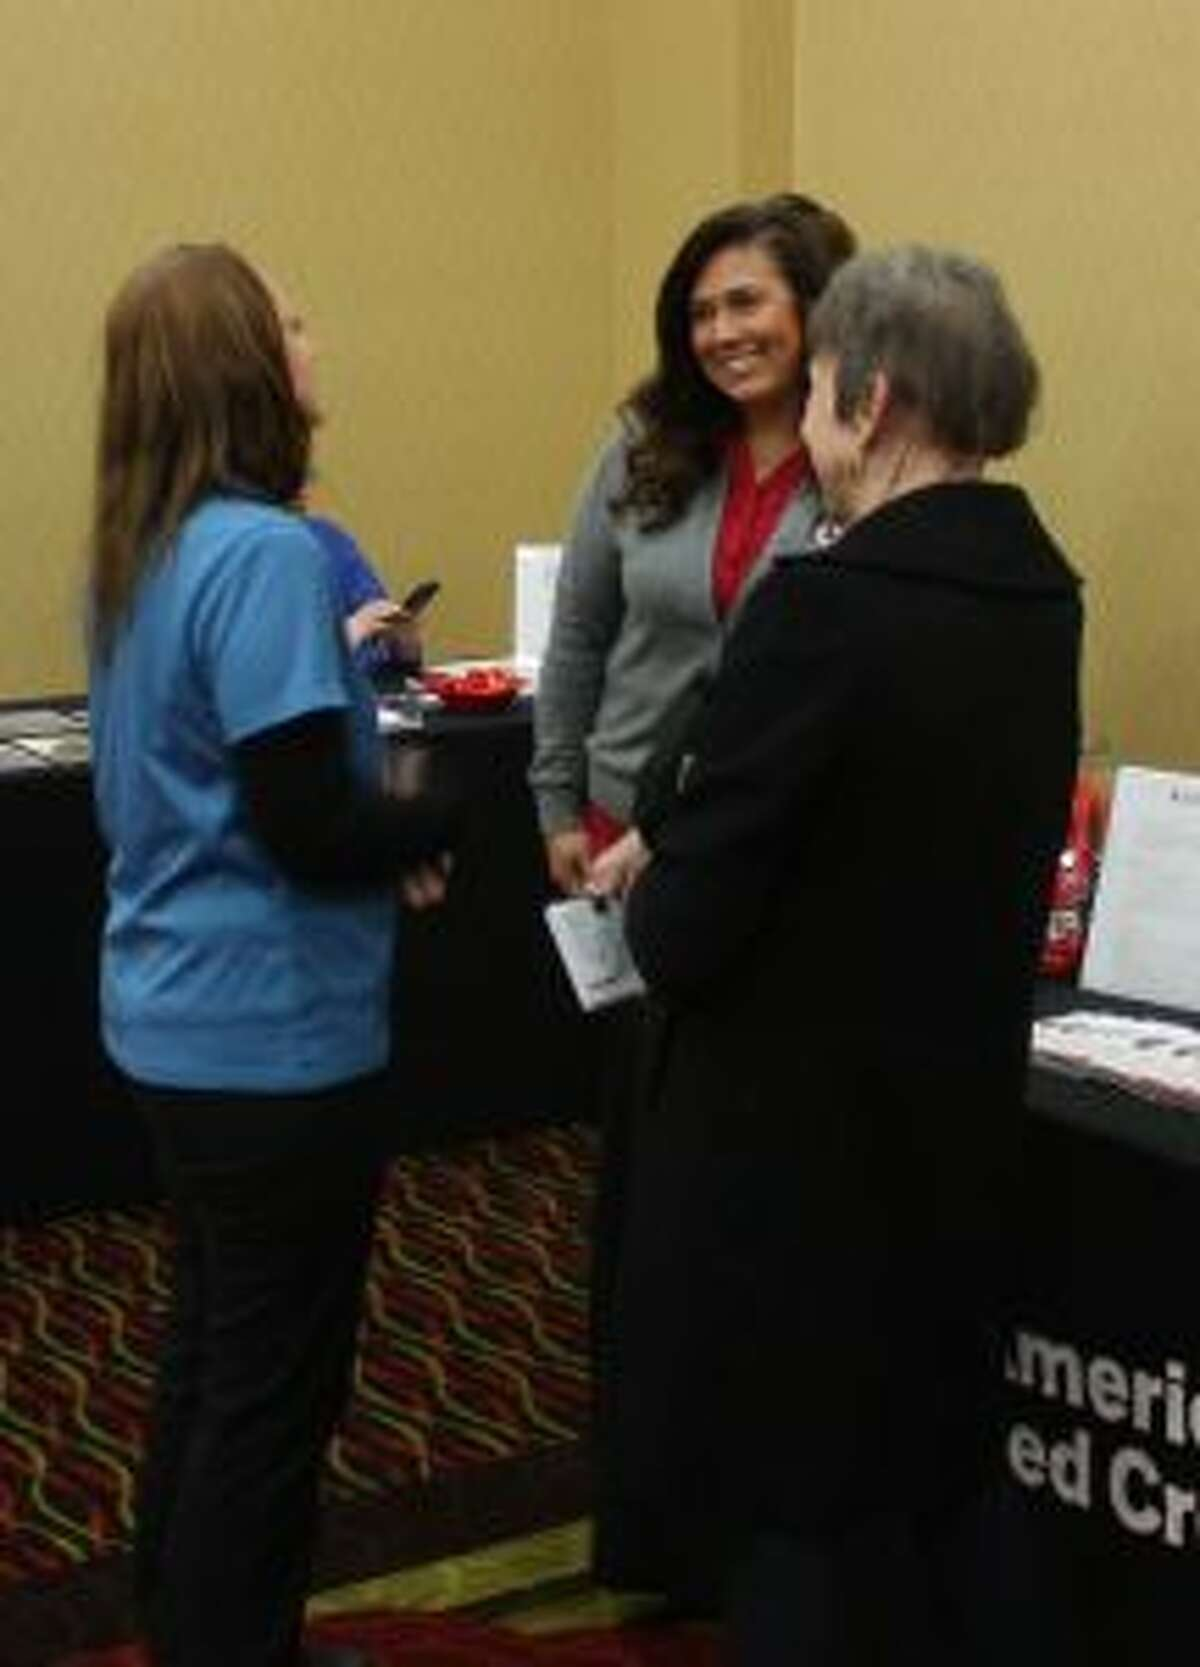 American Red Cross of West Michigan Executive Director Tiffany Page, second from left, is pictured speaking with Trisha Newcombe, far left, and Karen Shane at the Community Giving Day event Thursday. (Pioneer photo/Tim Rath)